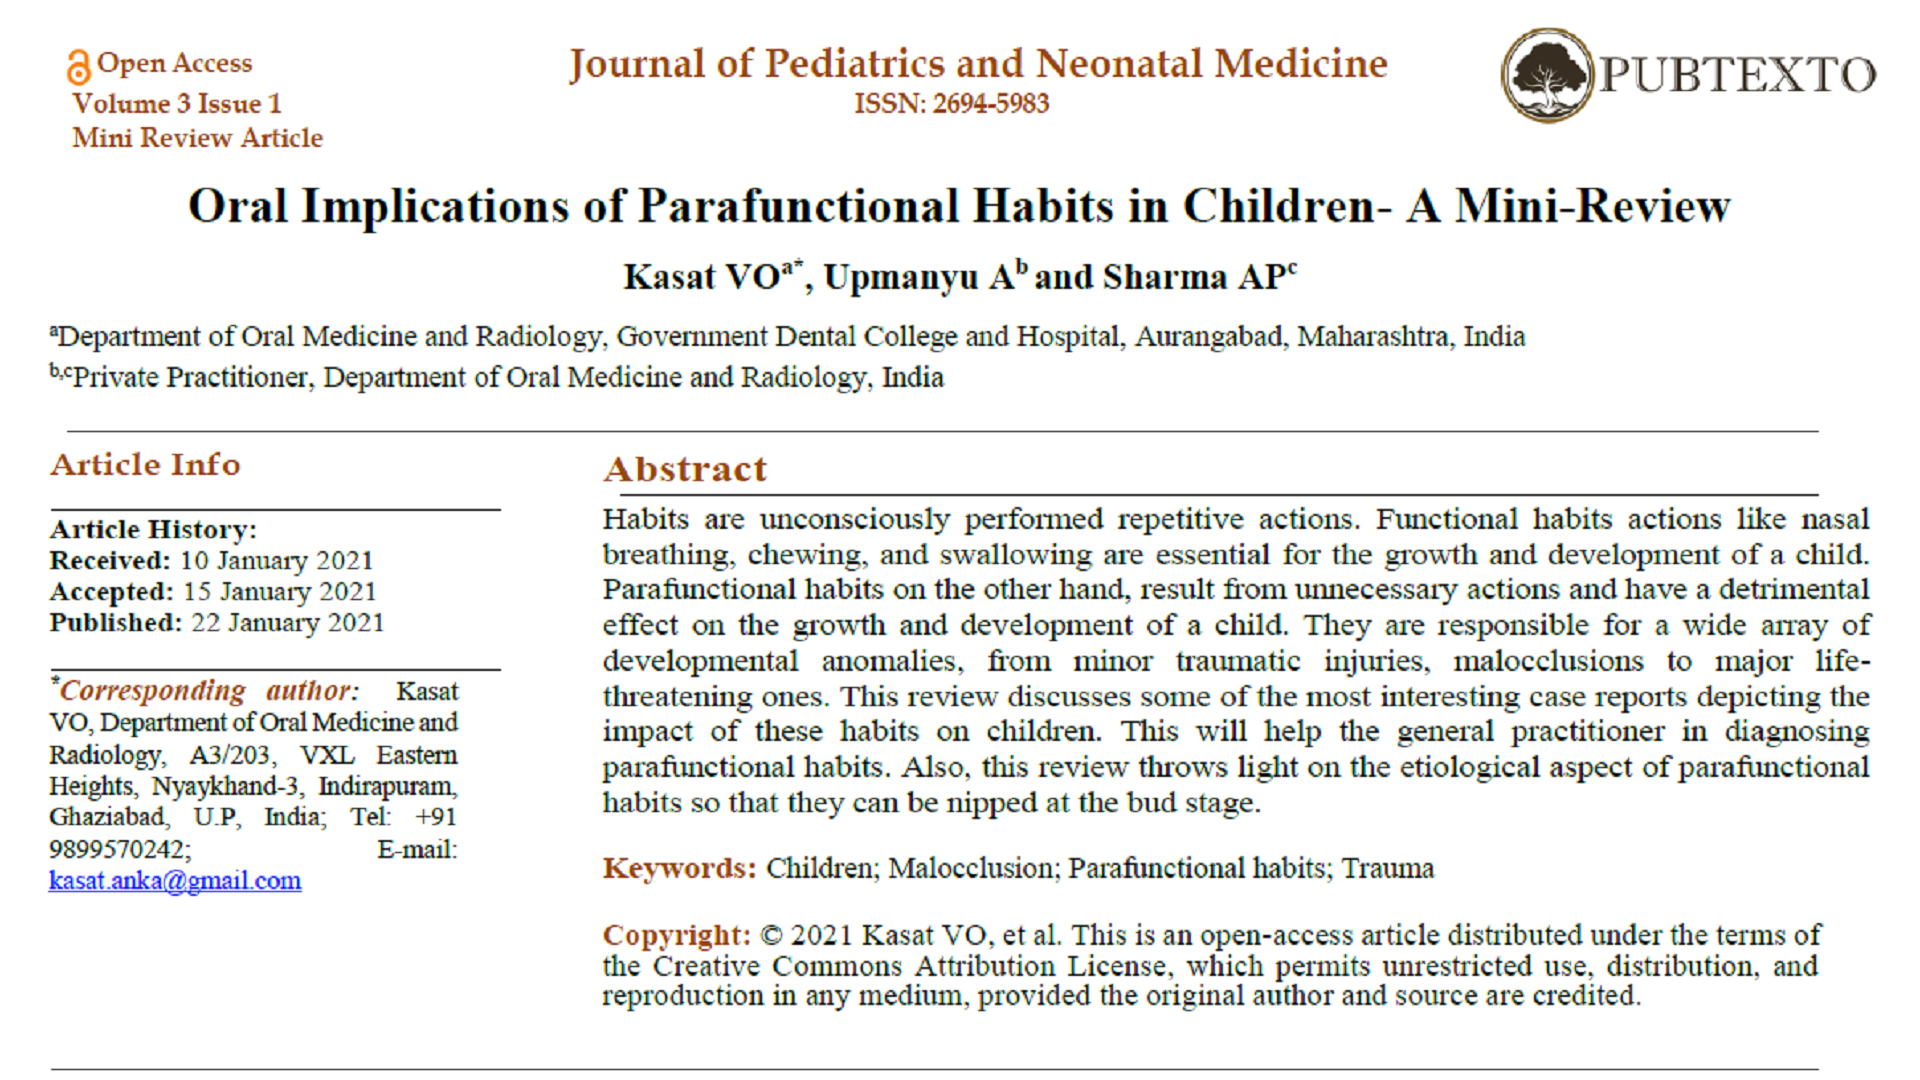 Oral Implications of Parafunctional Habits in Children- A Mini-Review